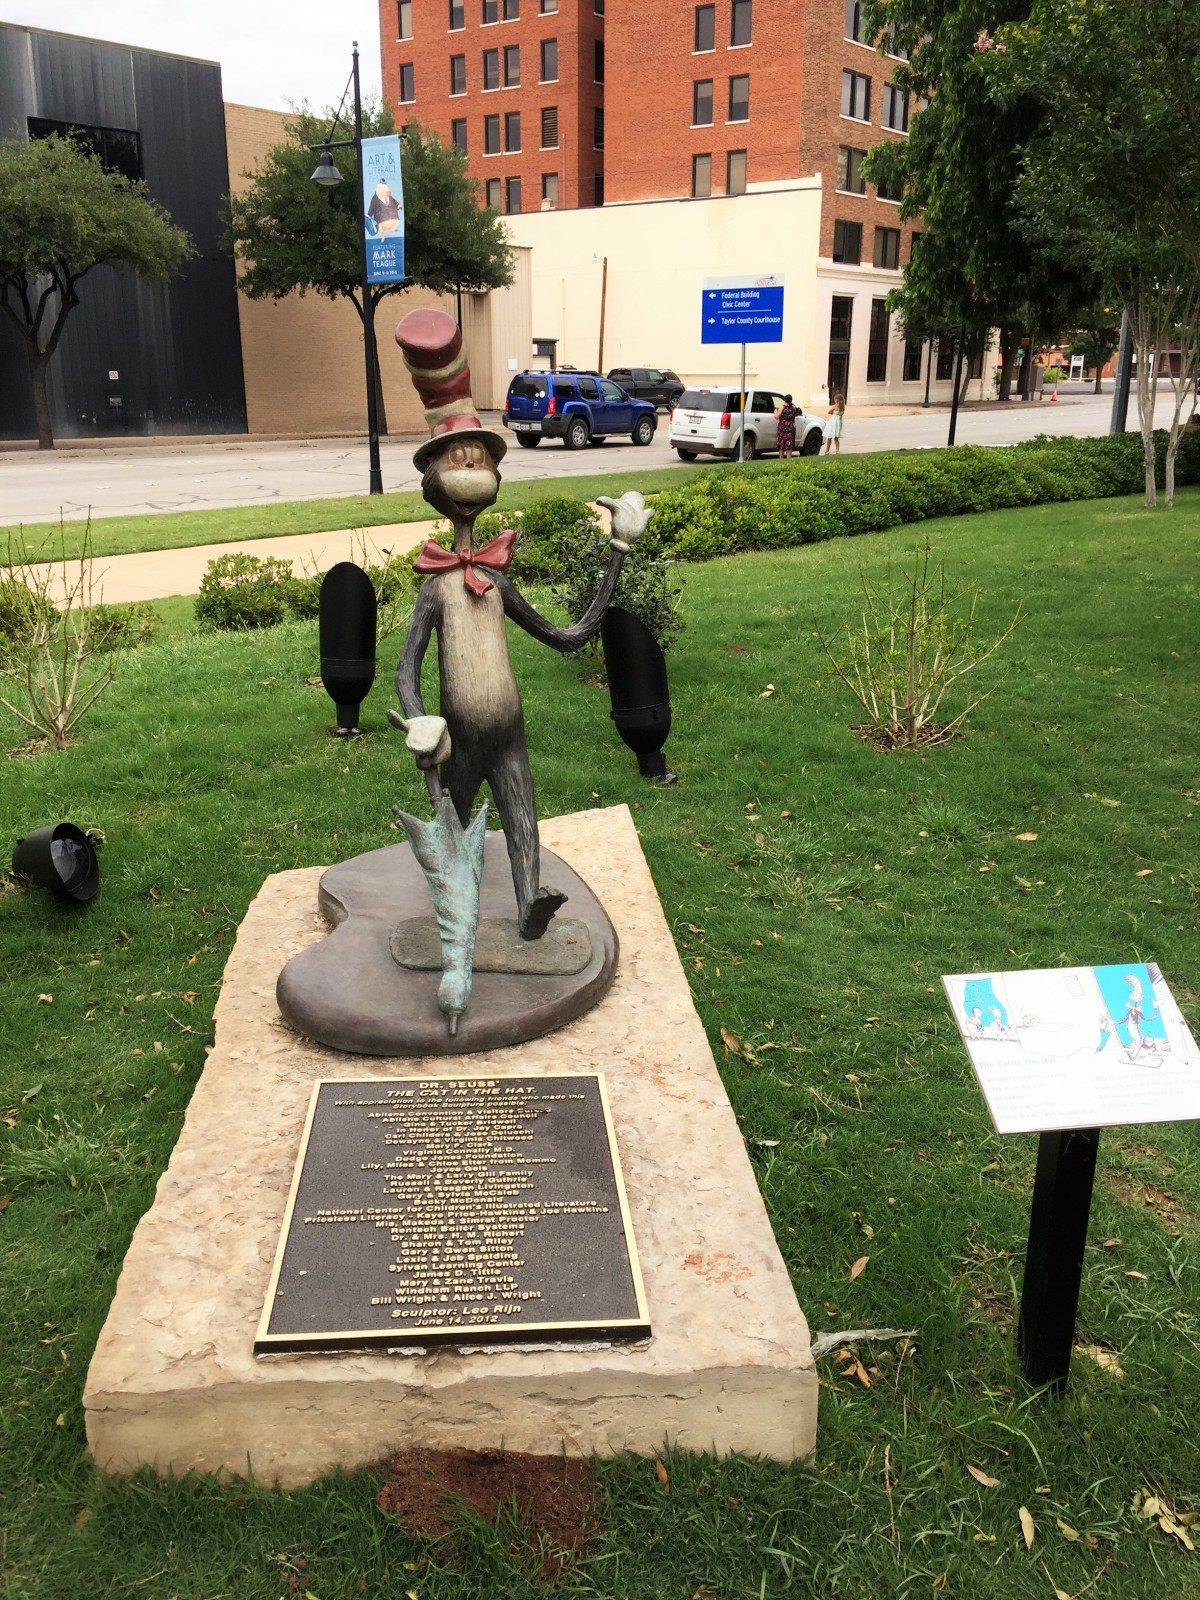 Storybook sculptures, abilene, Texas, Cat in the Hat, Dr Seuss